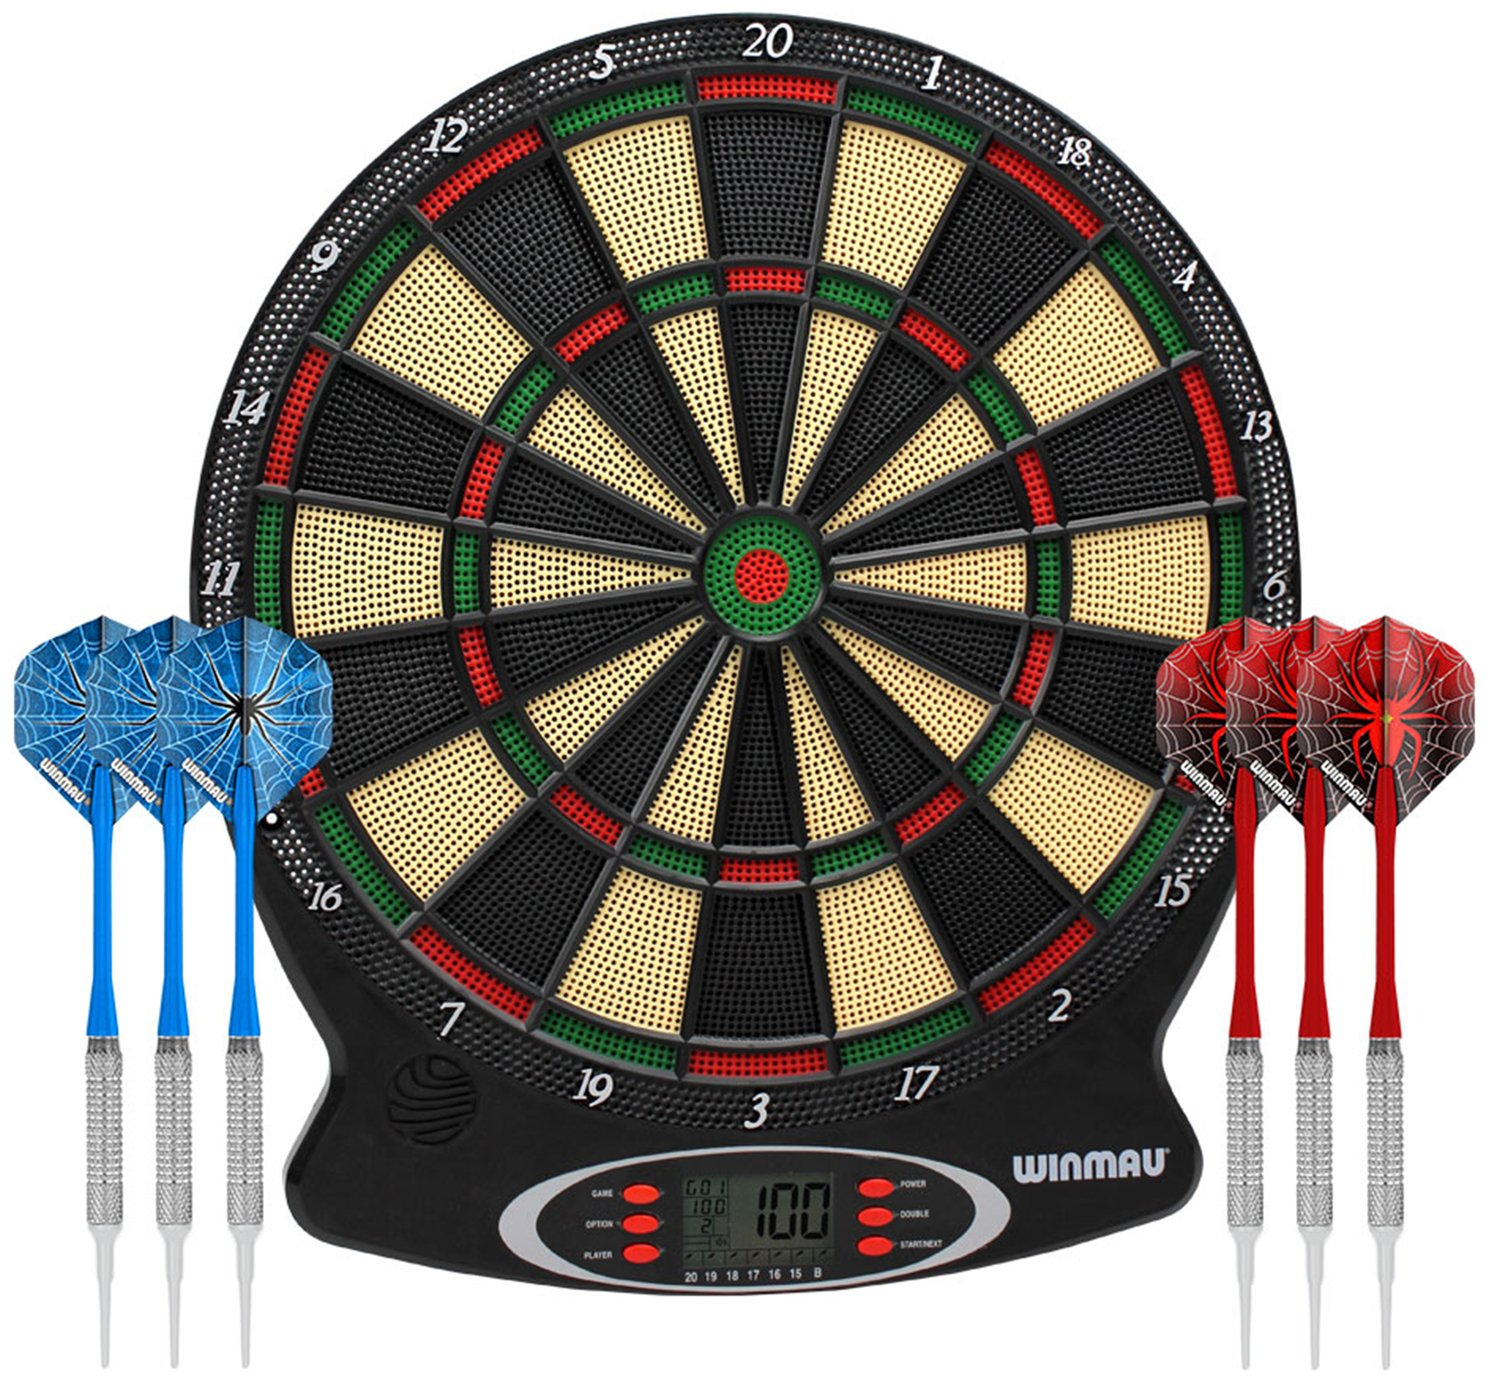 Winmau Soft Tip Dartboard from Winmau